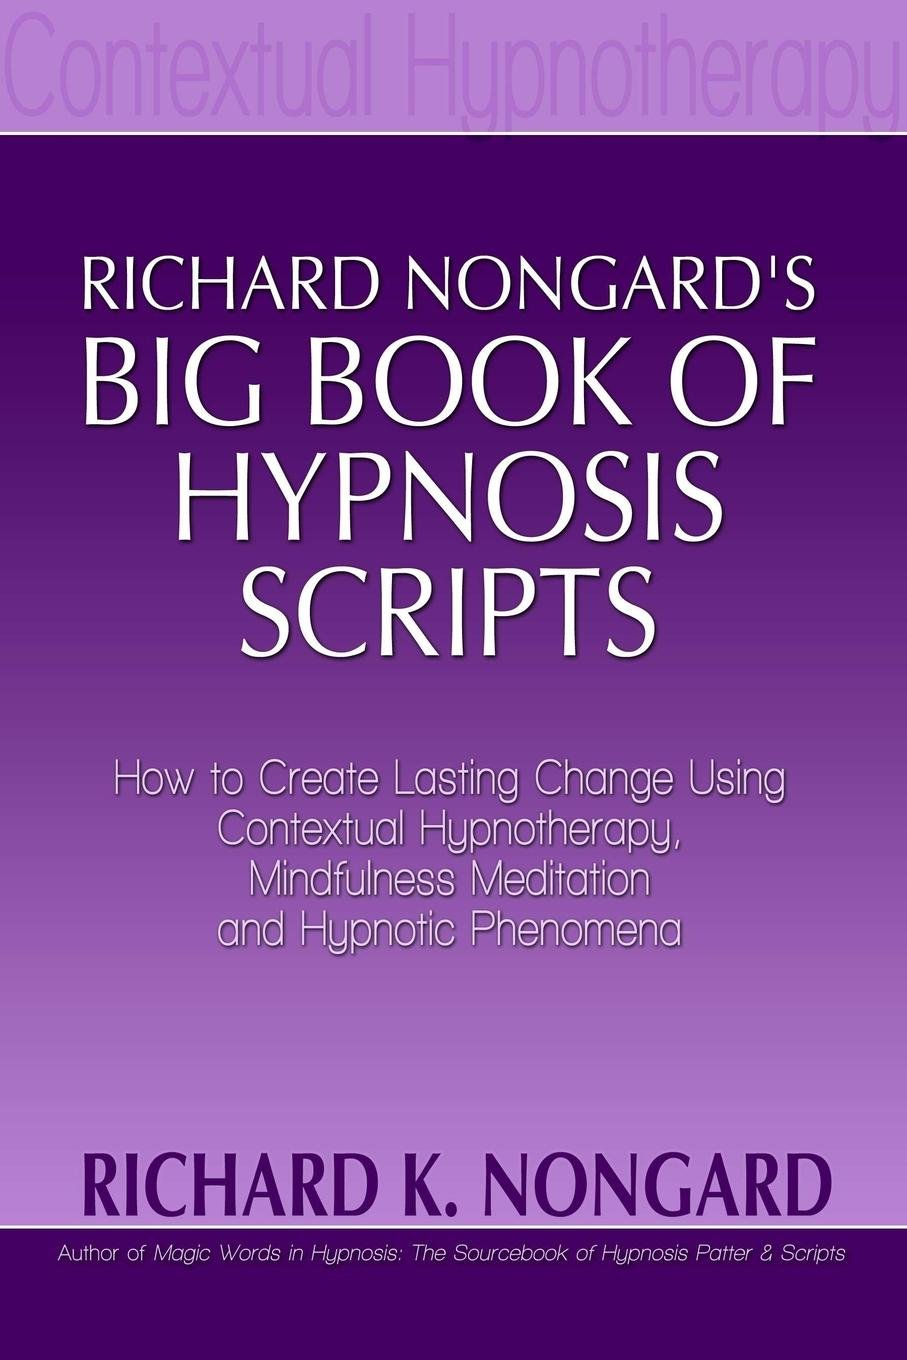 Richard Nongard's Big Book of Hypnosis Scripts: How to